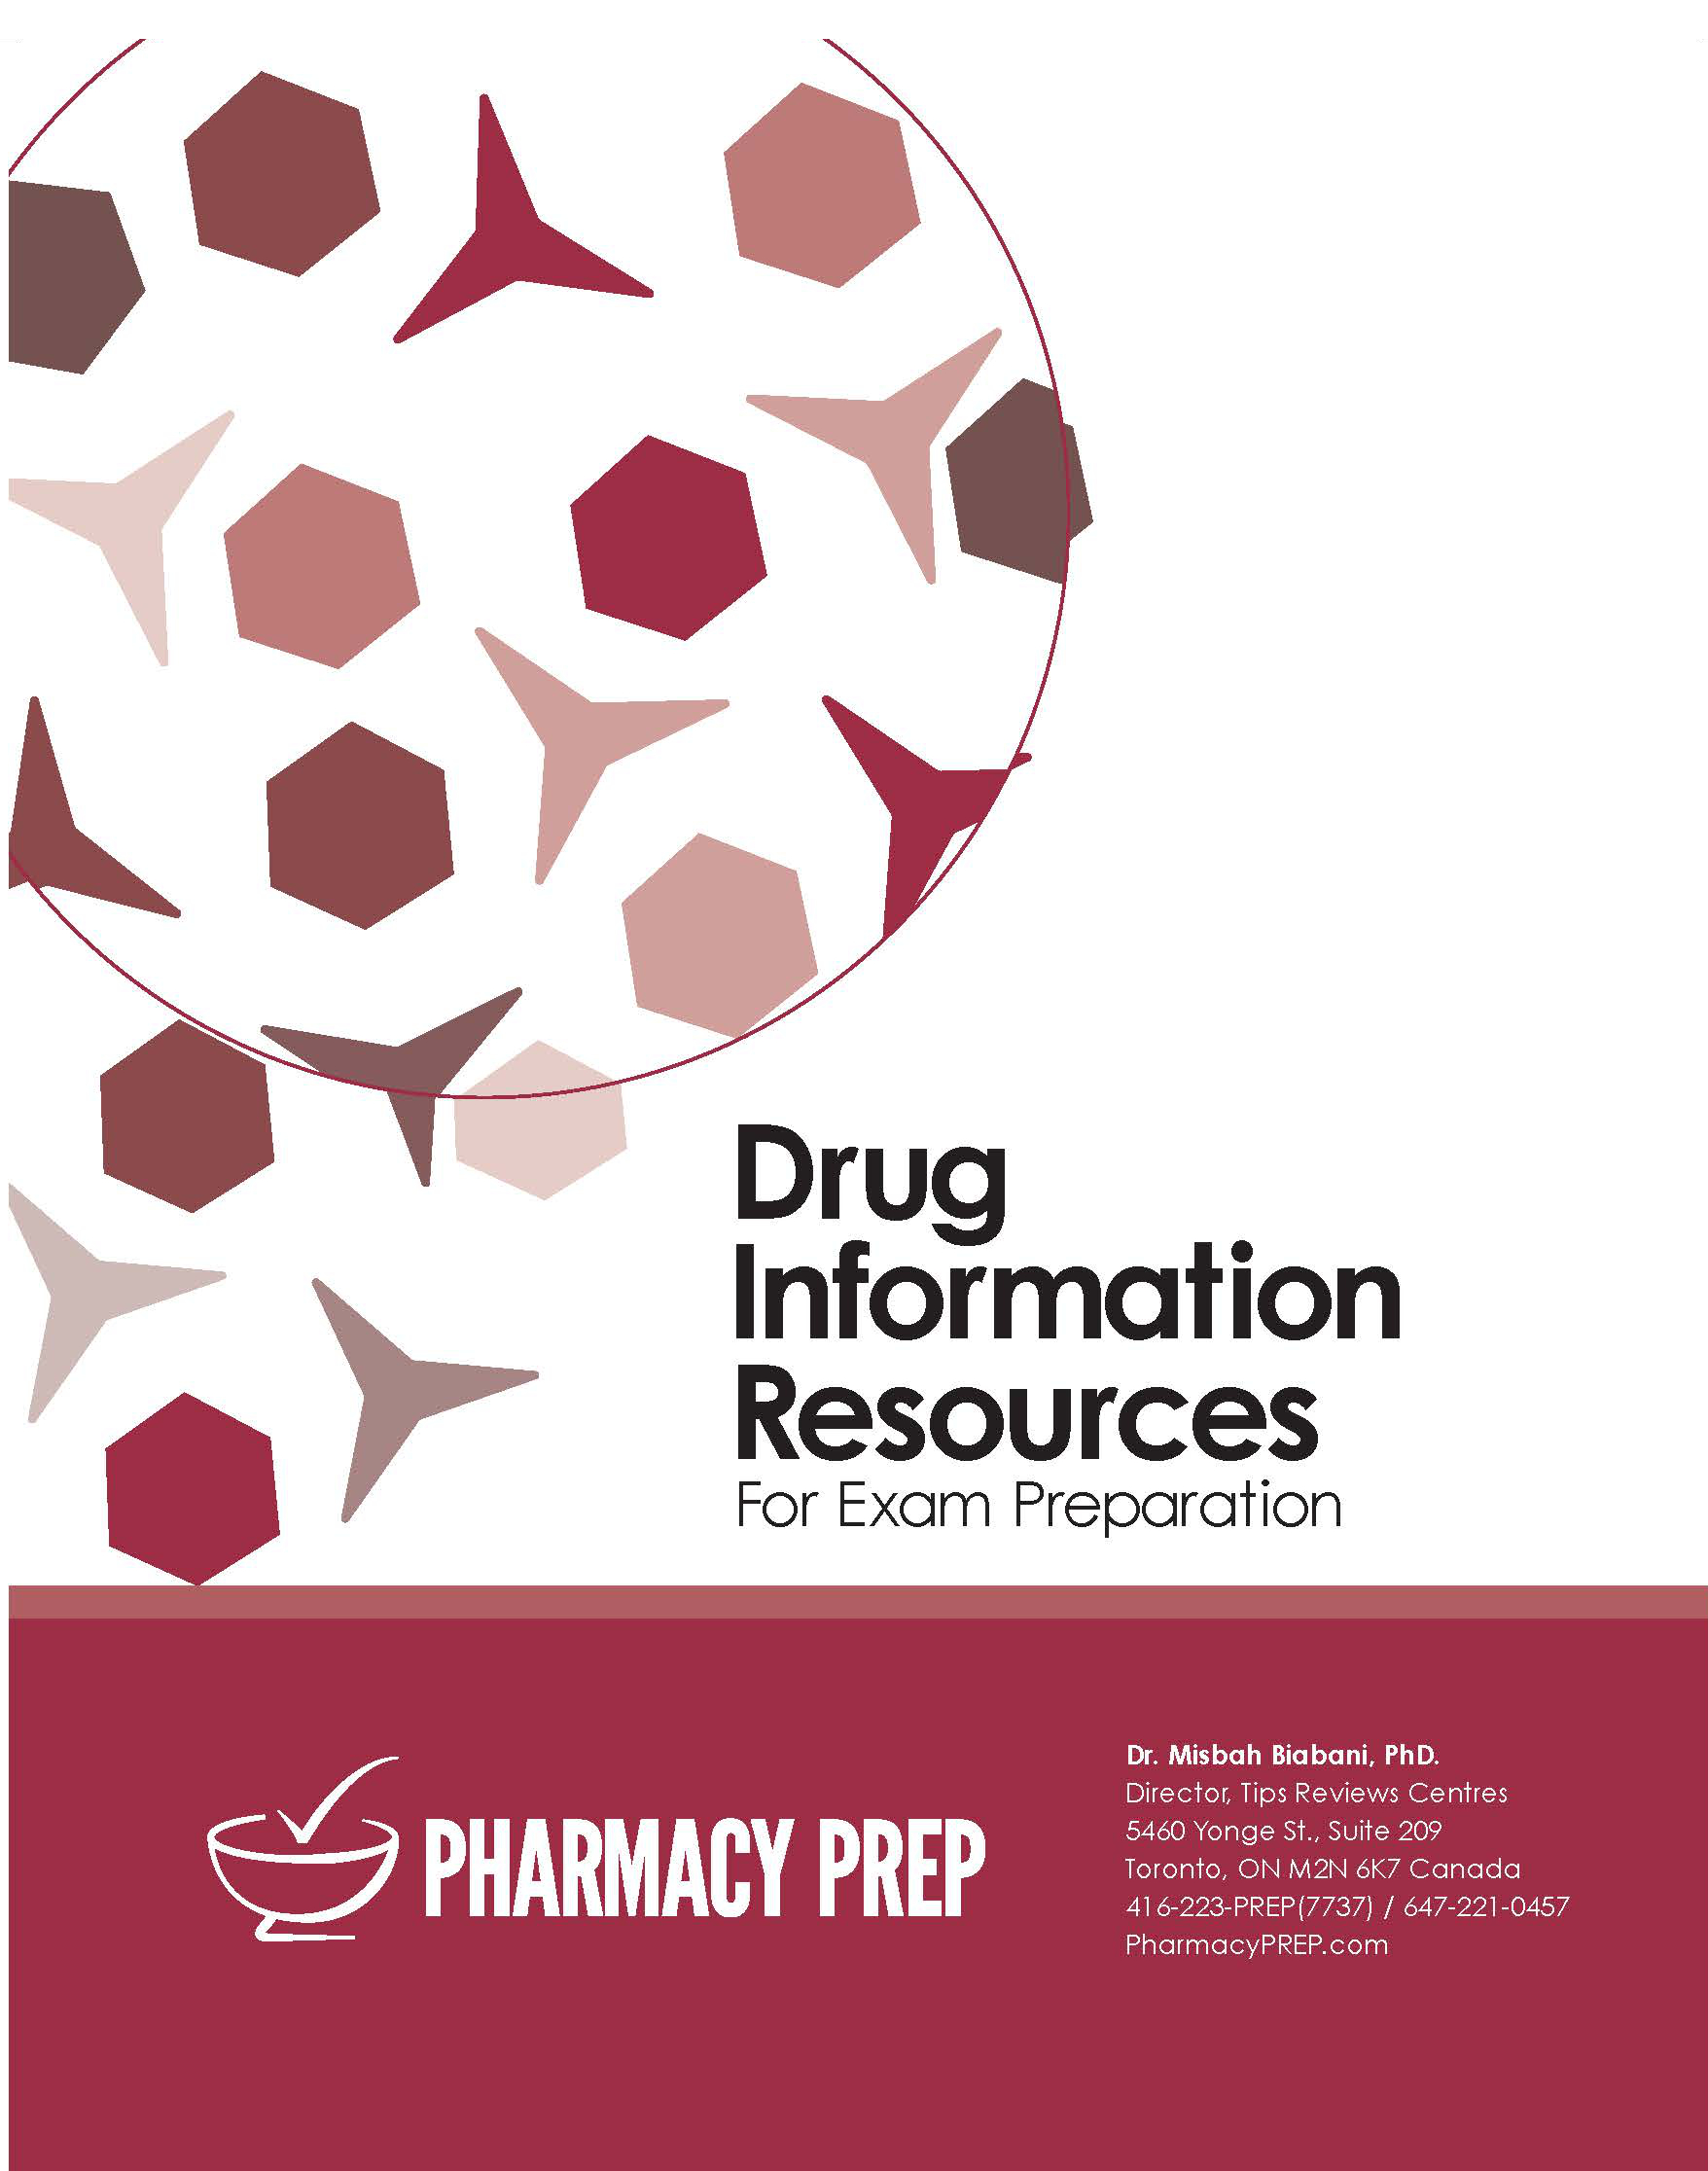 Pharmacy Prep Qualifying Exam Review Drug Information Resources - Misbah Biabani, Ph.D.